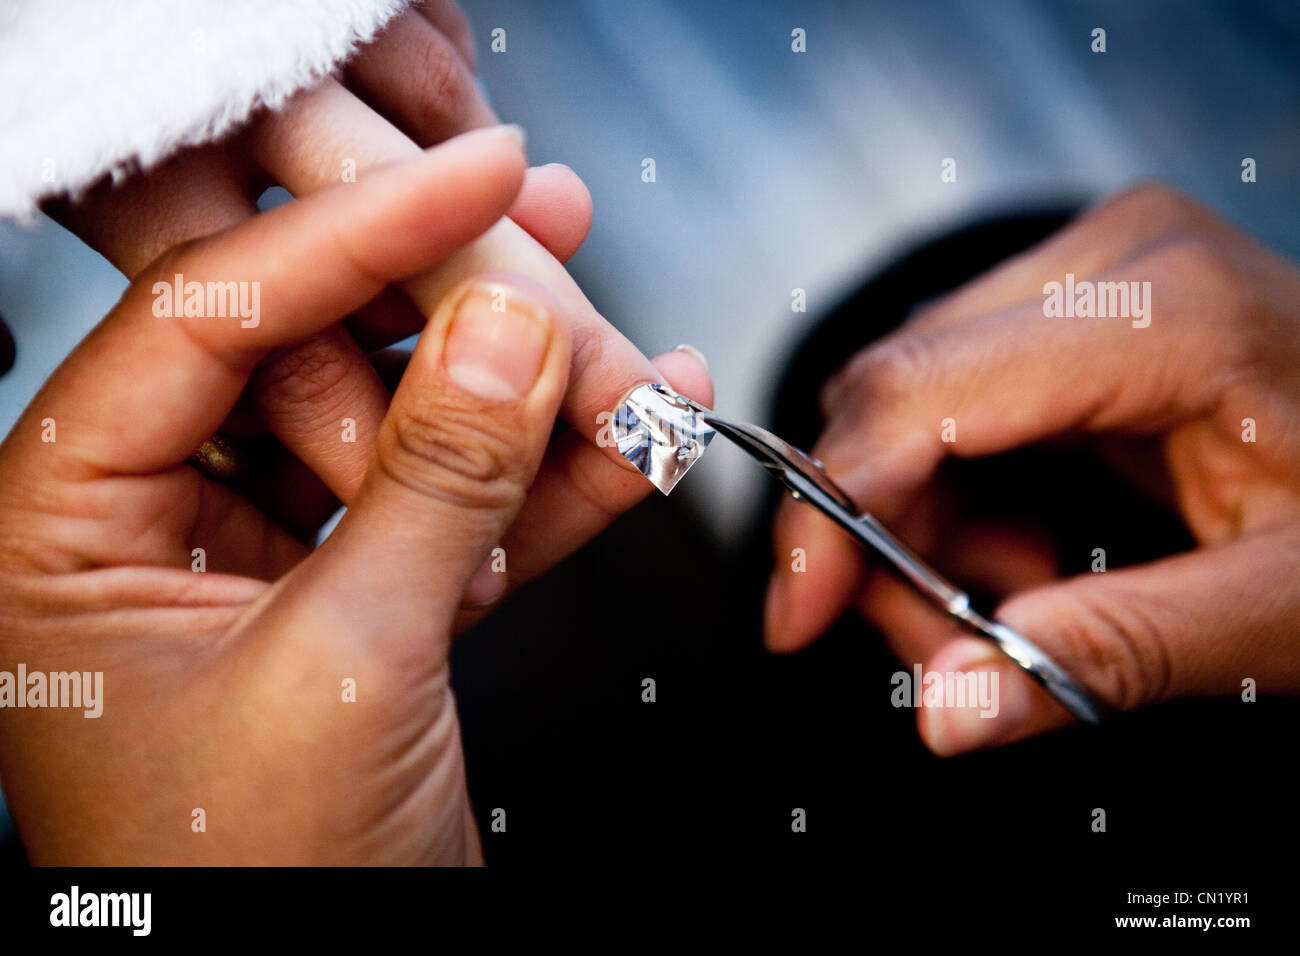 Fake Nails Stock Photos & Fake Nails Stock Images - Alamy